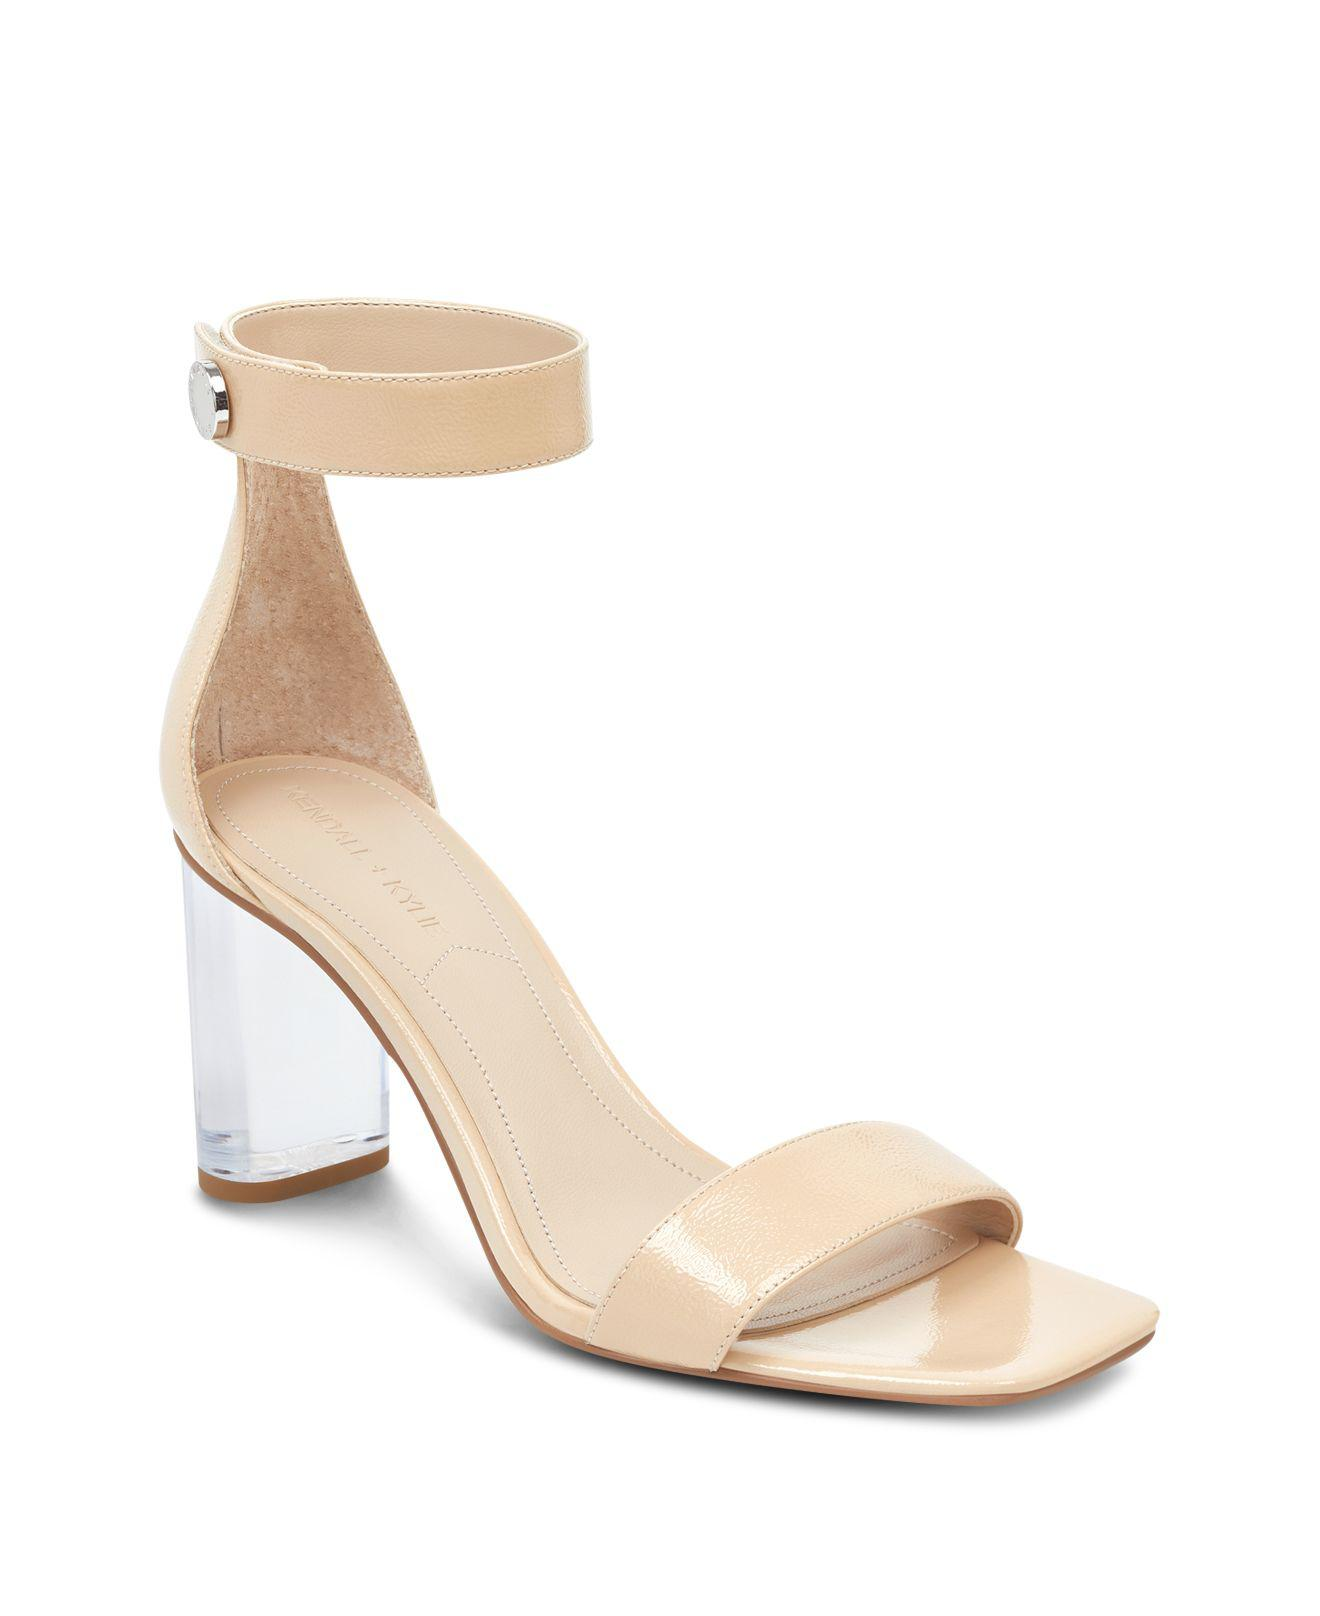 Kendall And Kylie Women's Lexx Patent Leather & Lucite High-Heel Sandals pGFO3bNEH